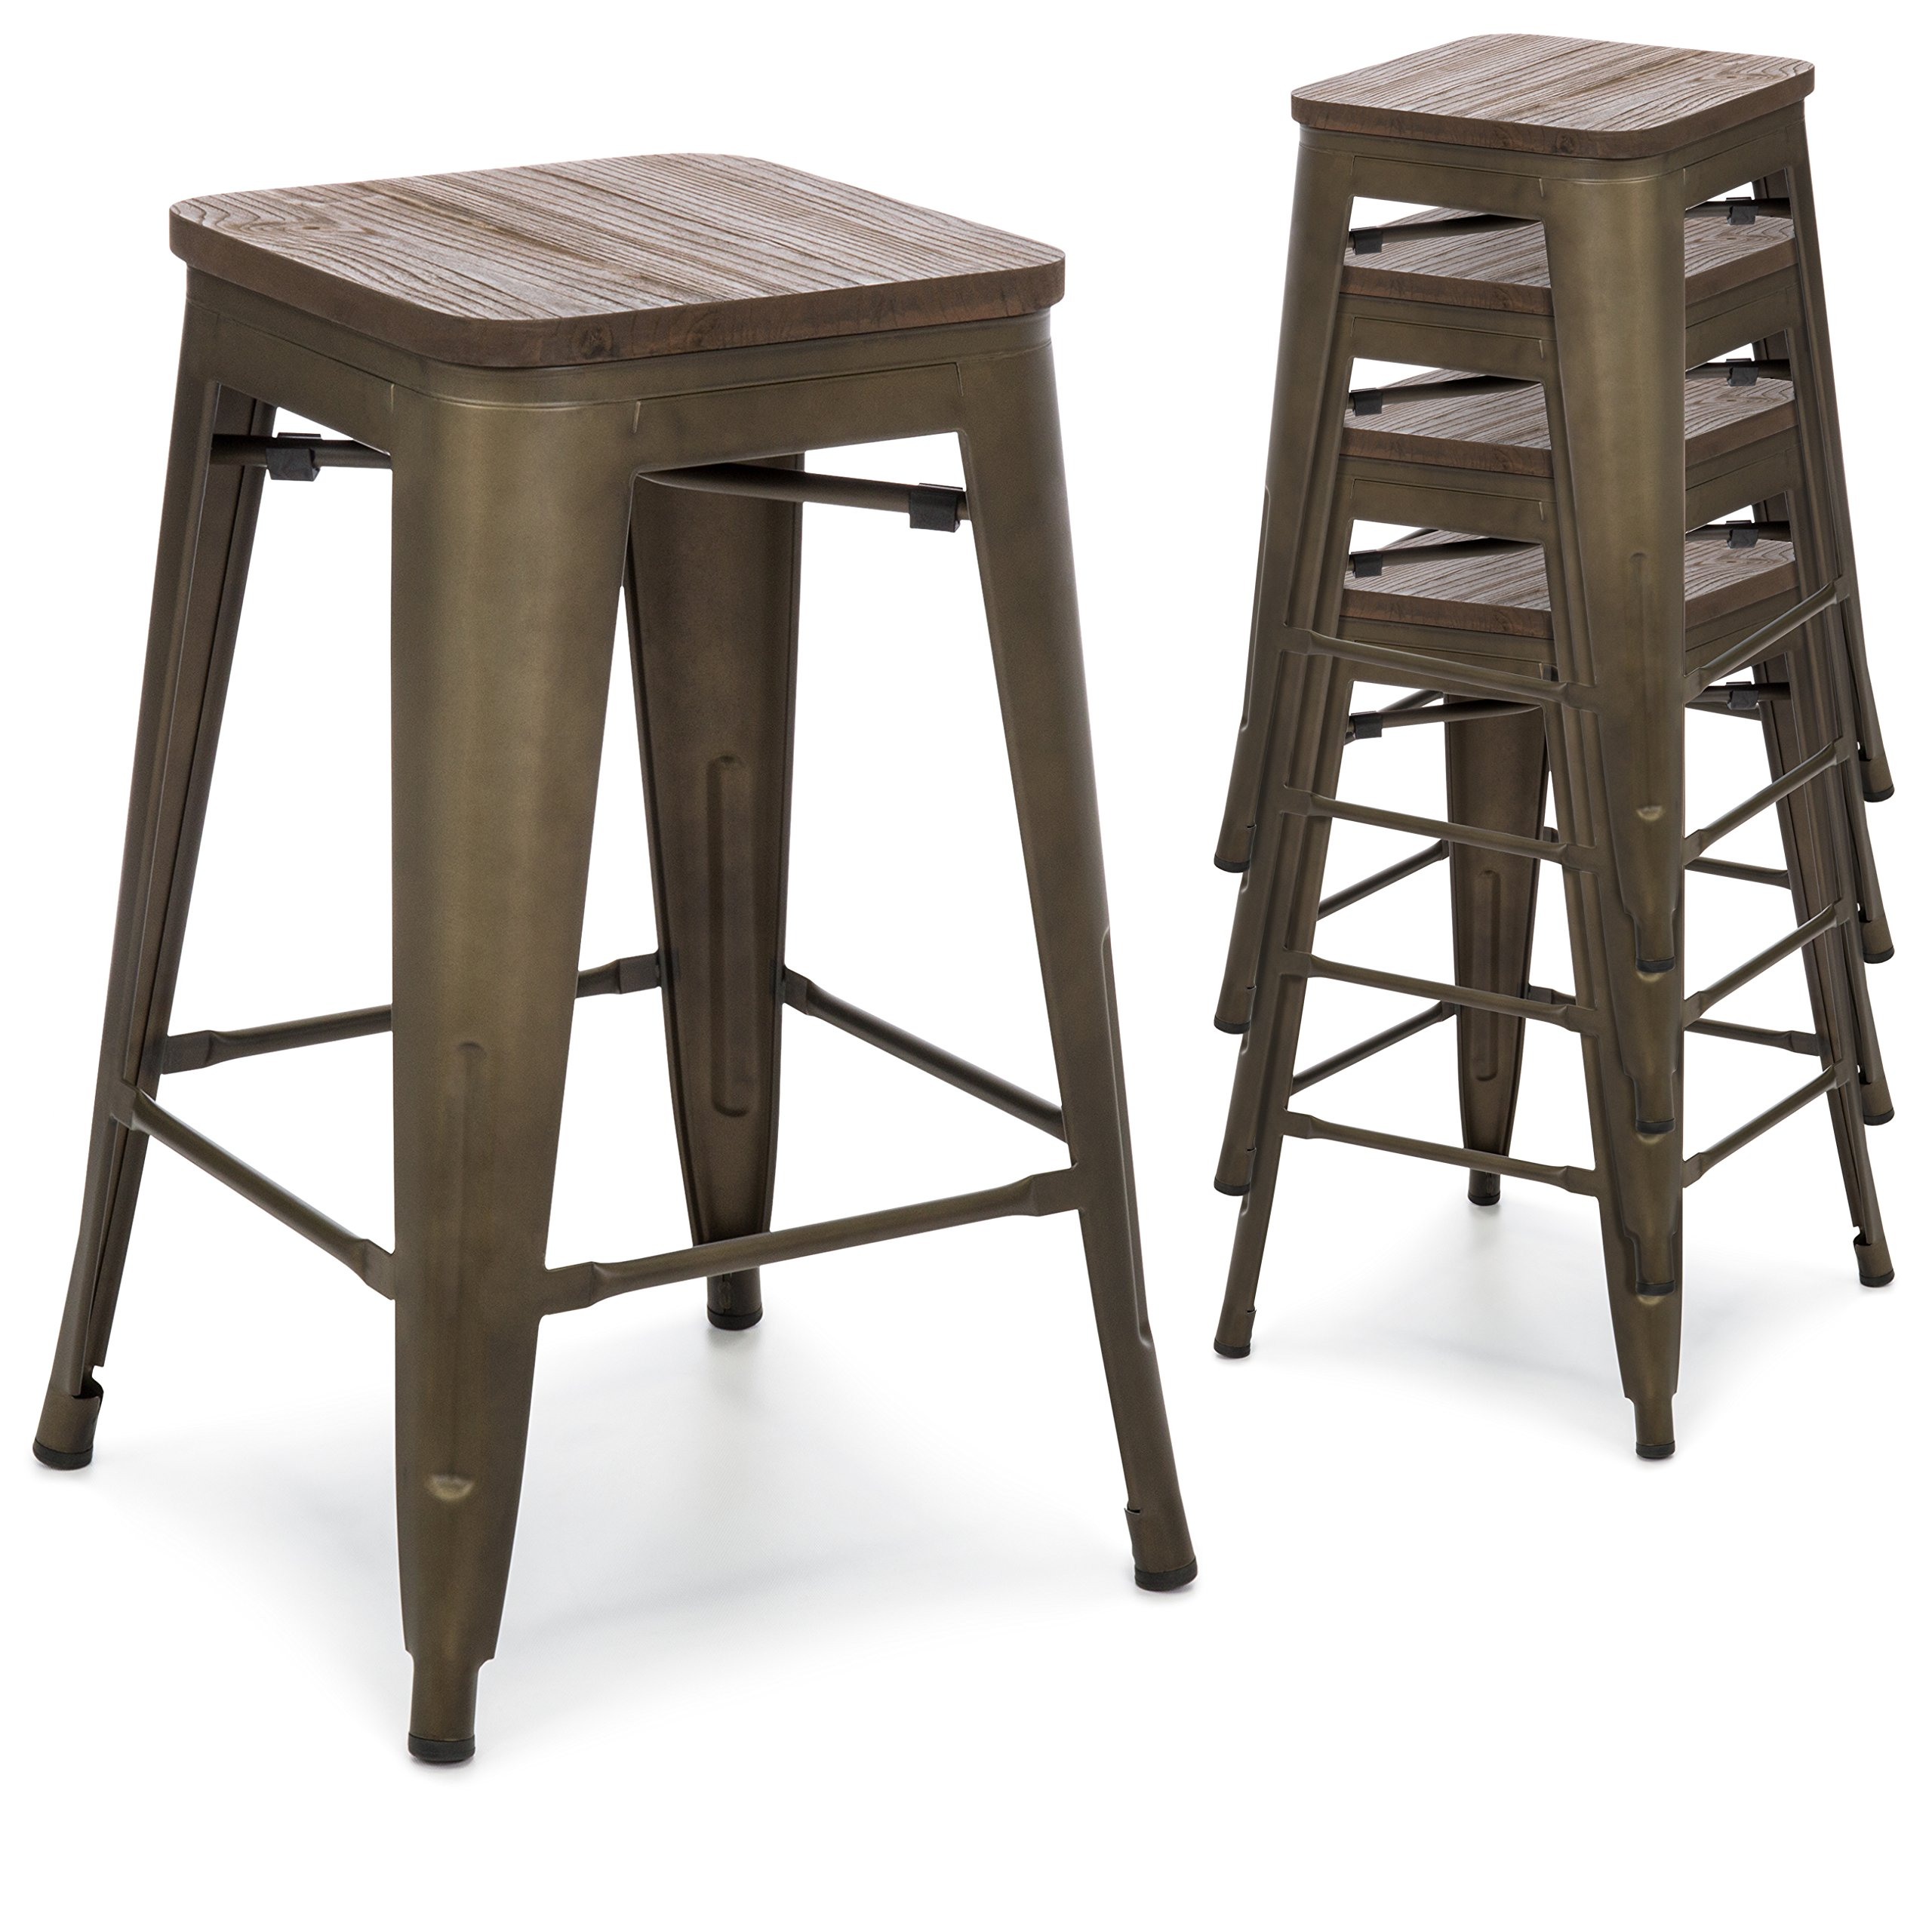 Best Choice Products 24in Set of 4 Stackable Industrial Distressed Metal Counter Height Bar Stools w/Wood Seat - Copper by Best Choice Products (Image #1)